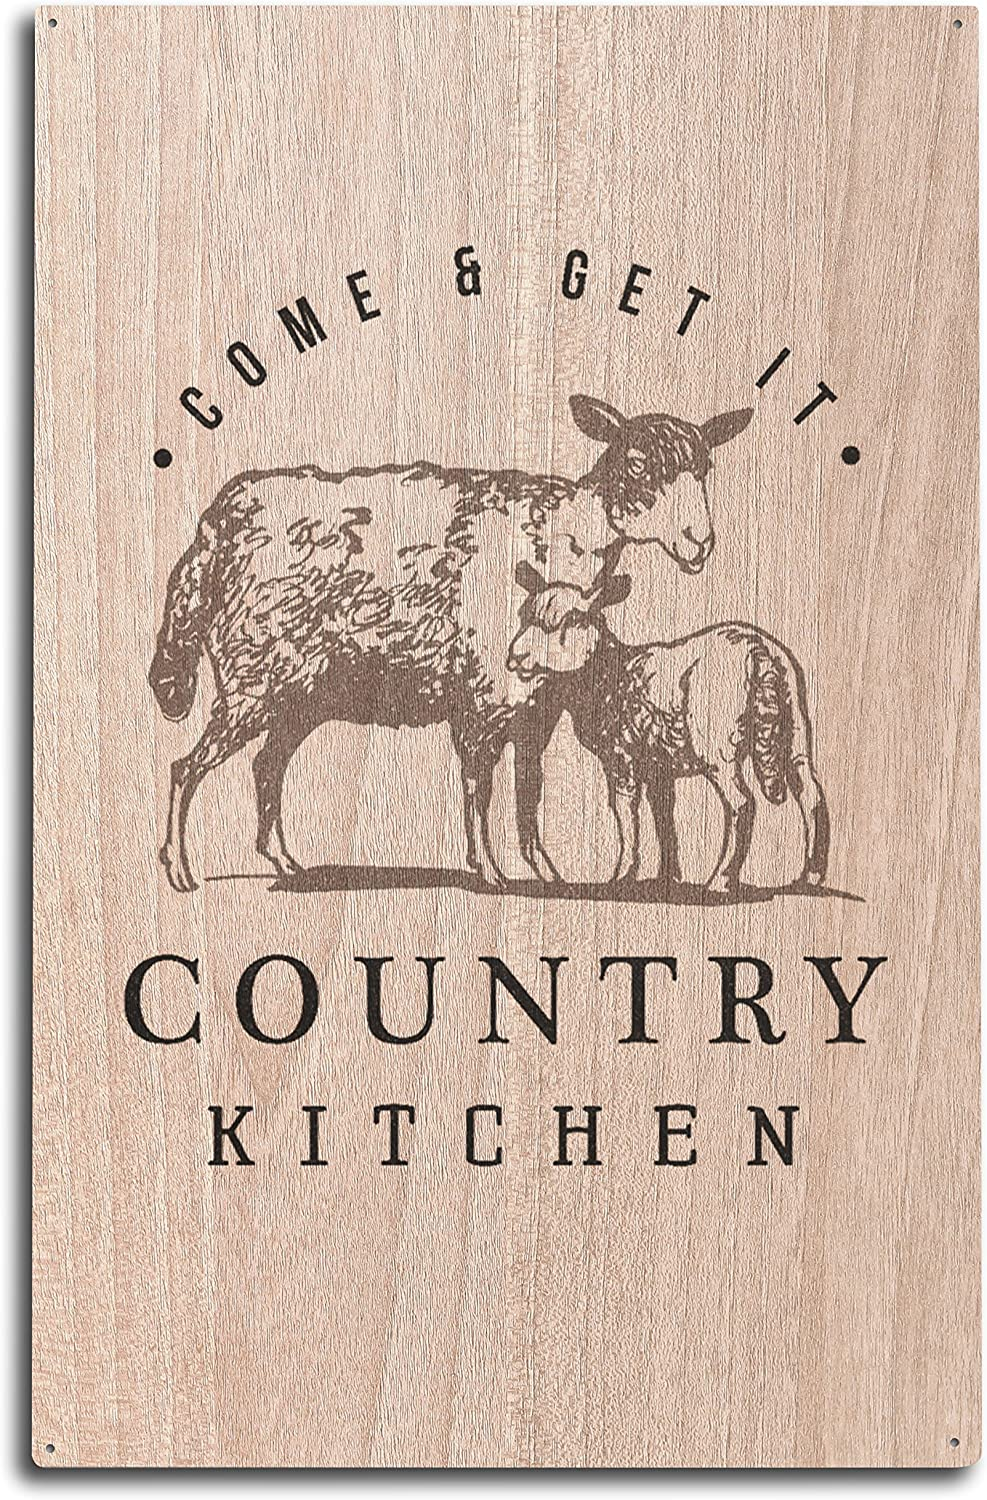 Sheep on White 24x36 Giclee Gallery Print, Wall Decor Travel Poster Country Kitchen